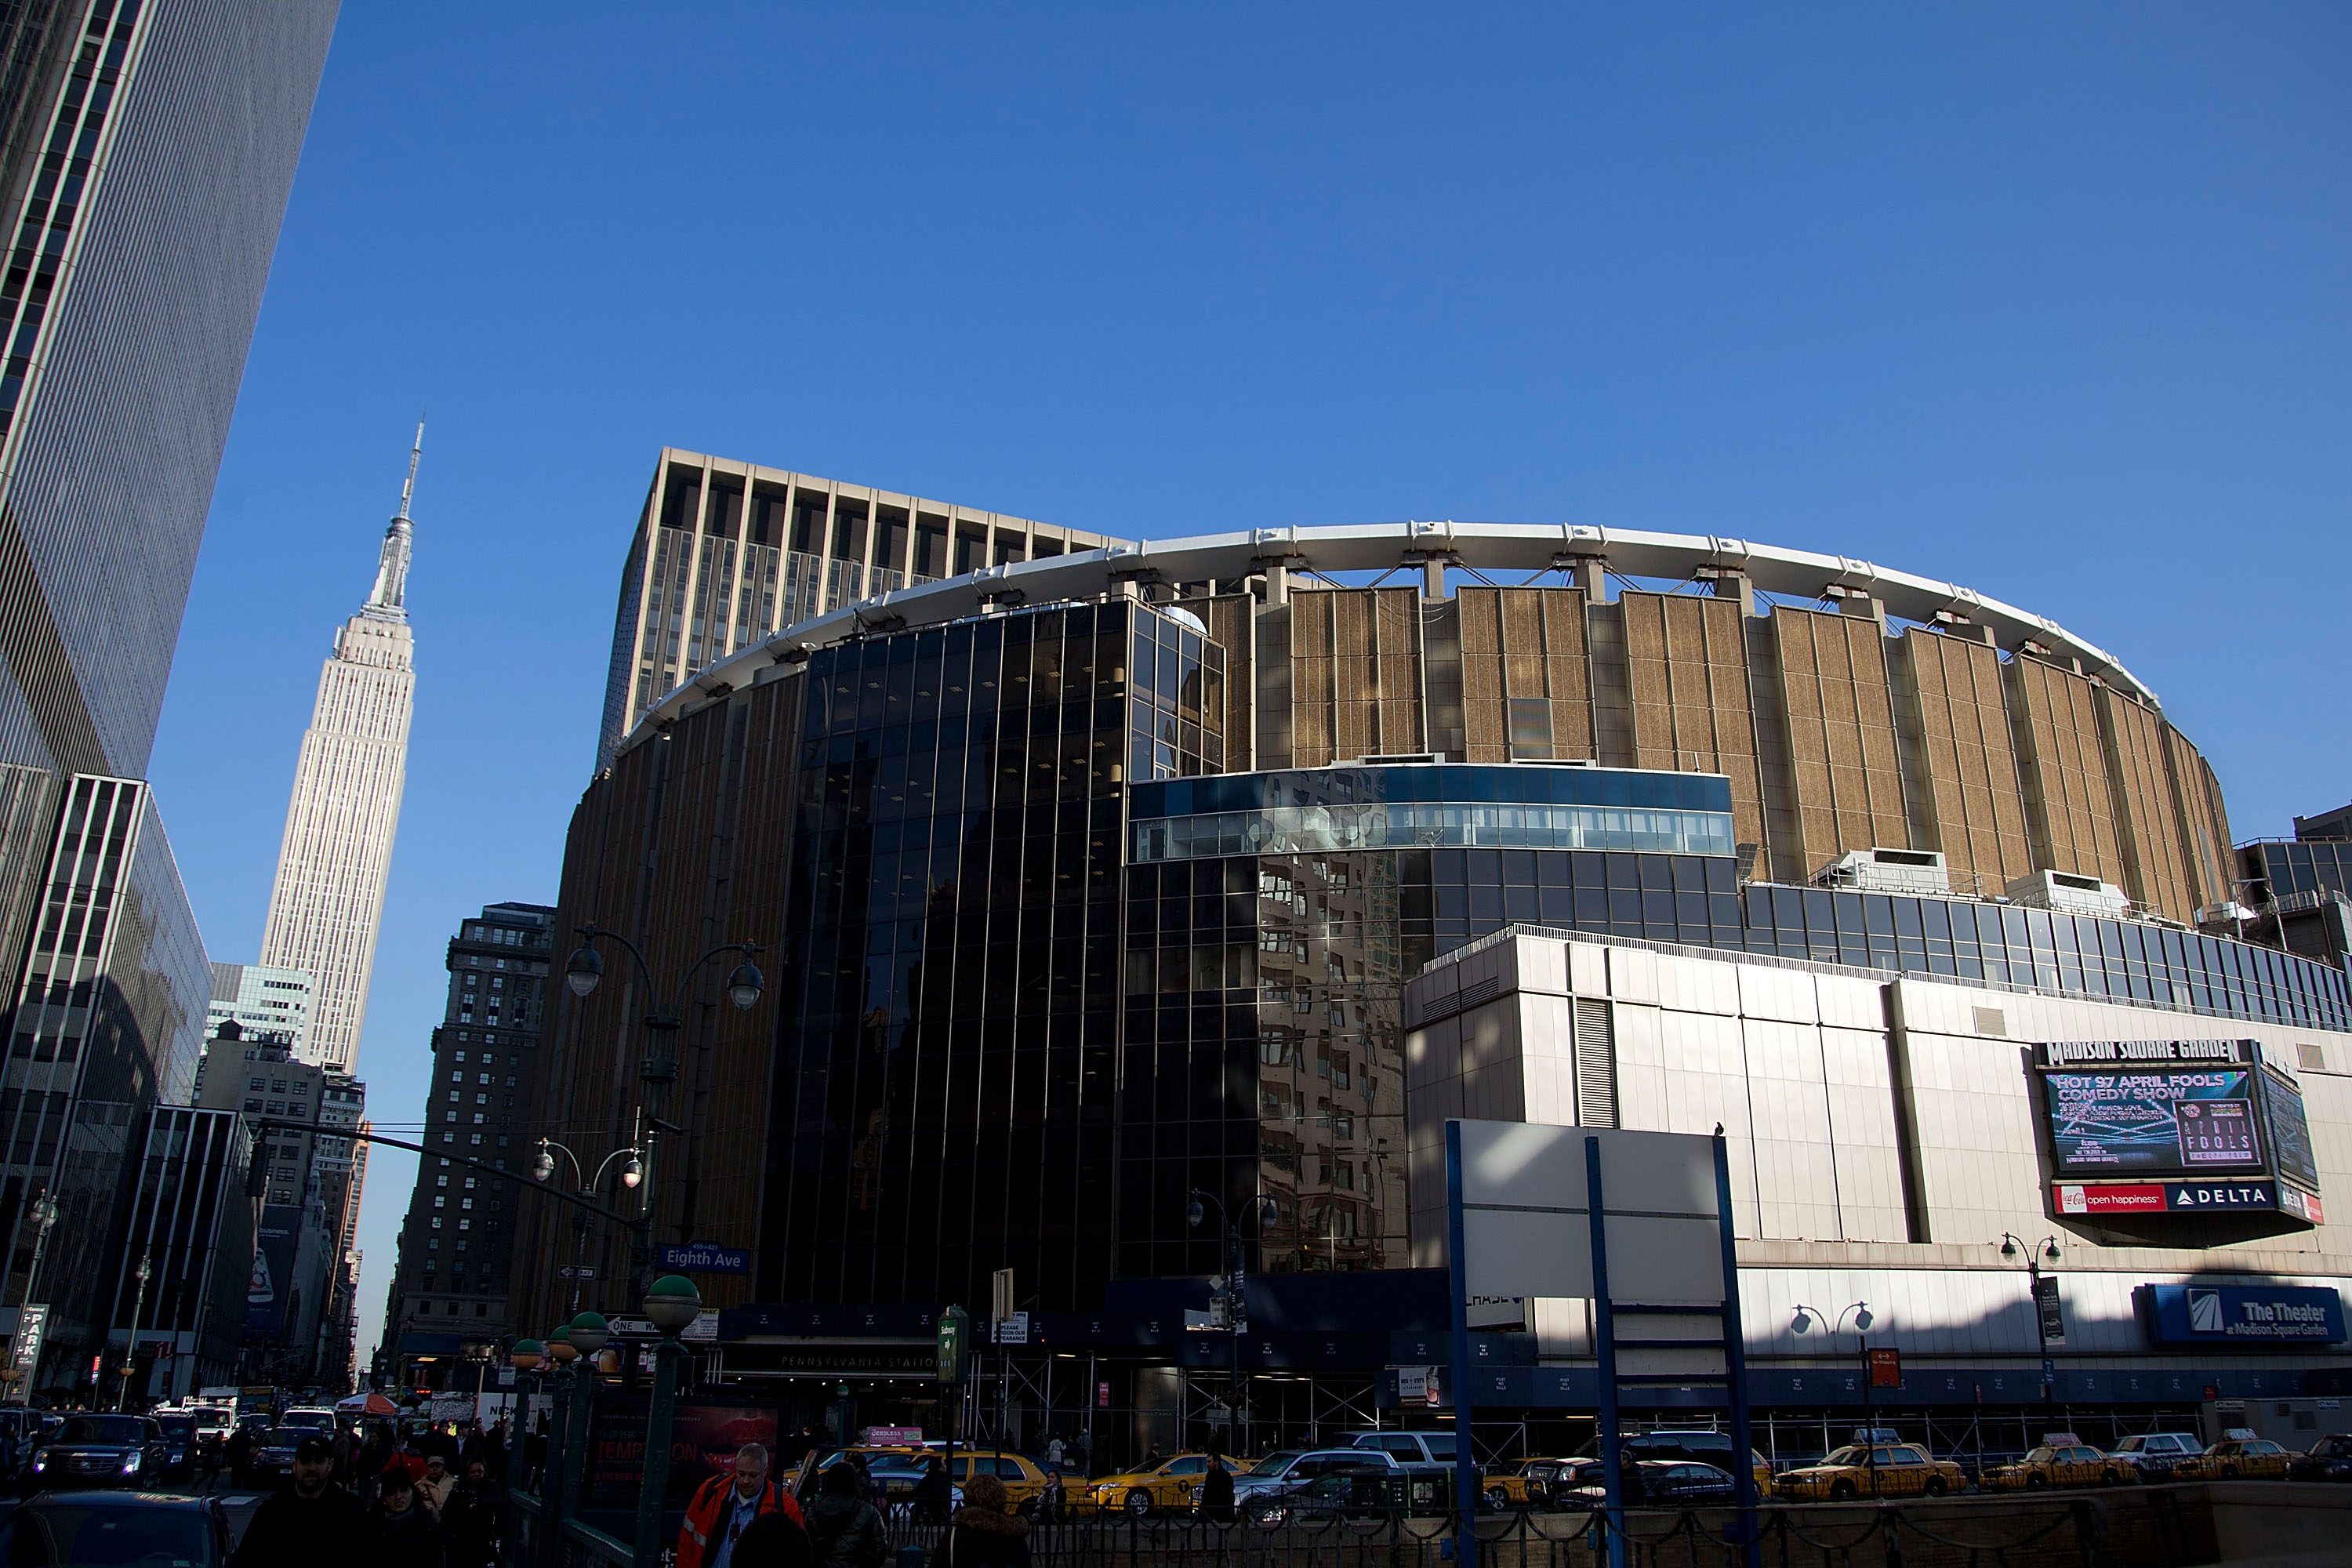 Arena Wars How Does The Barclays Center Stack Up Against